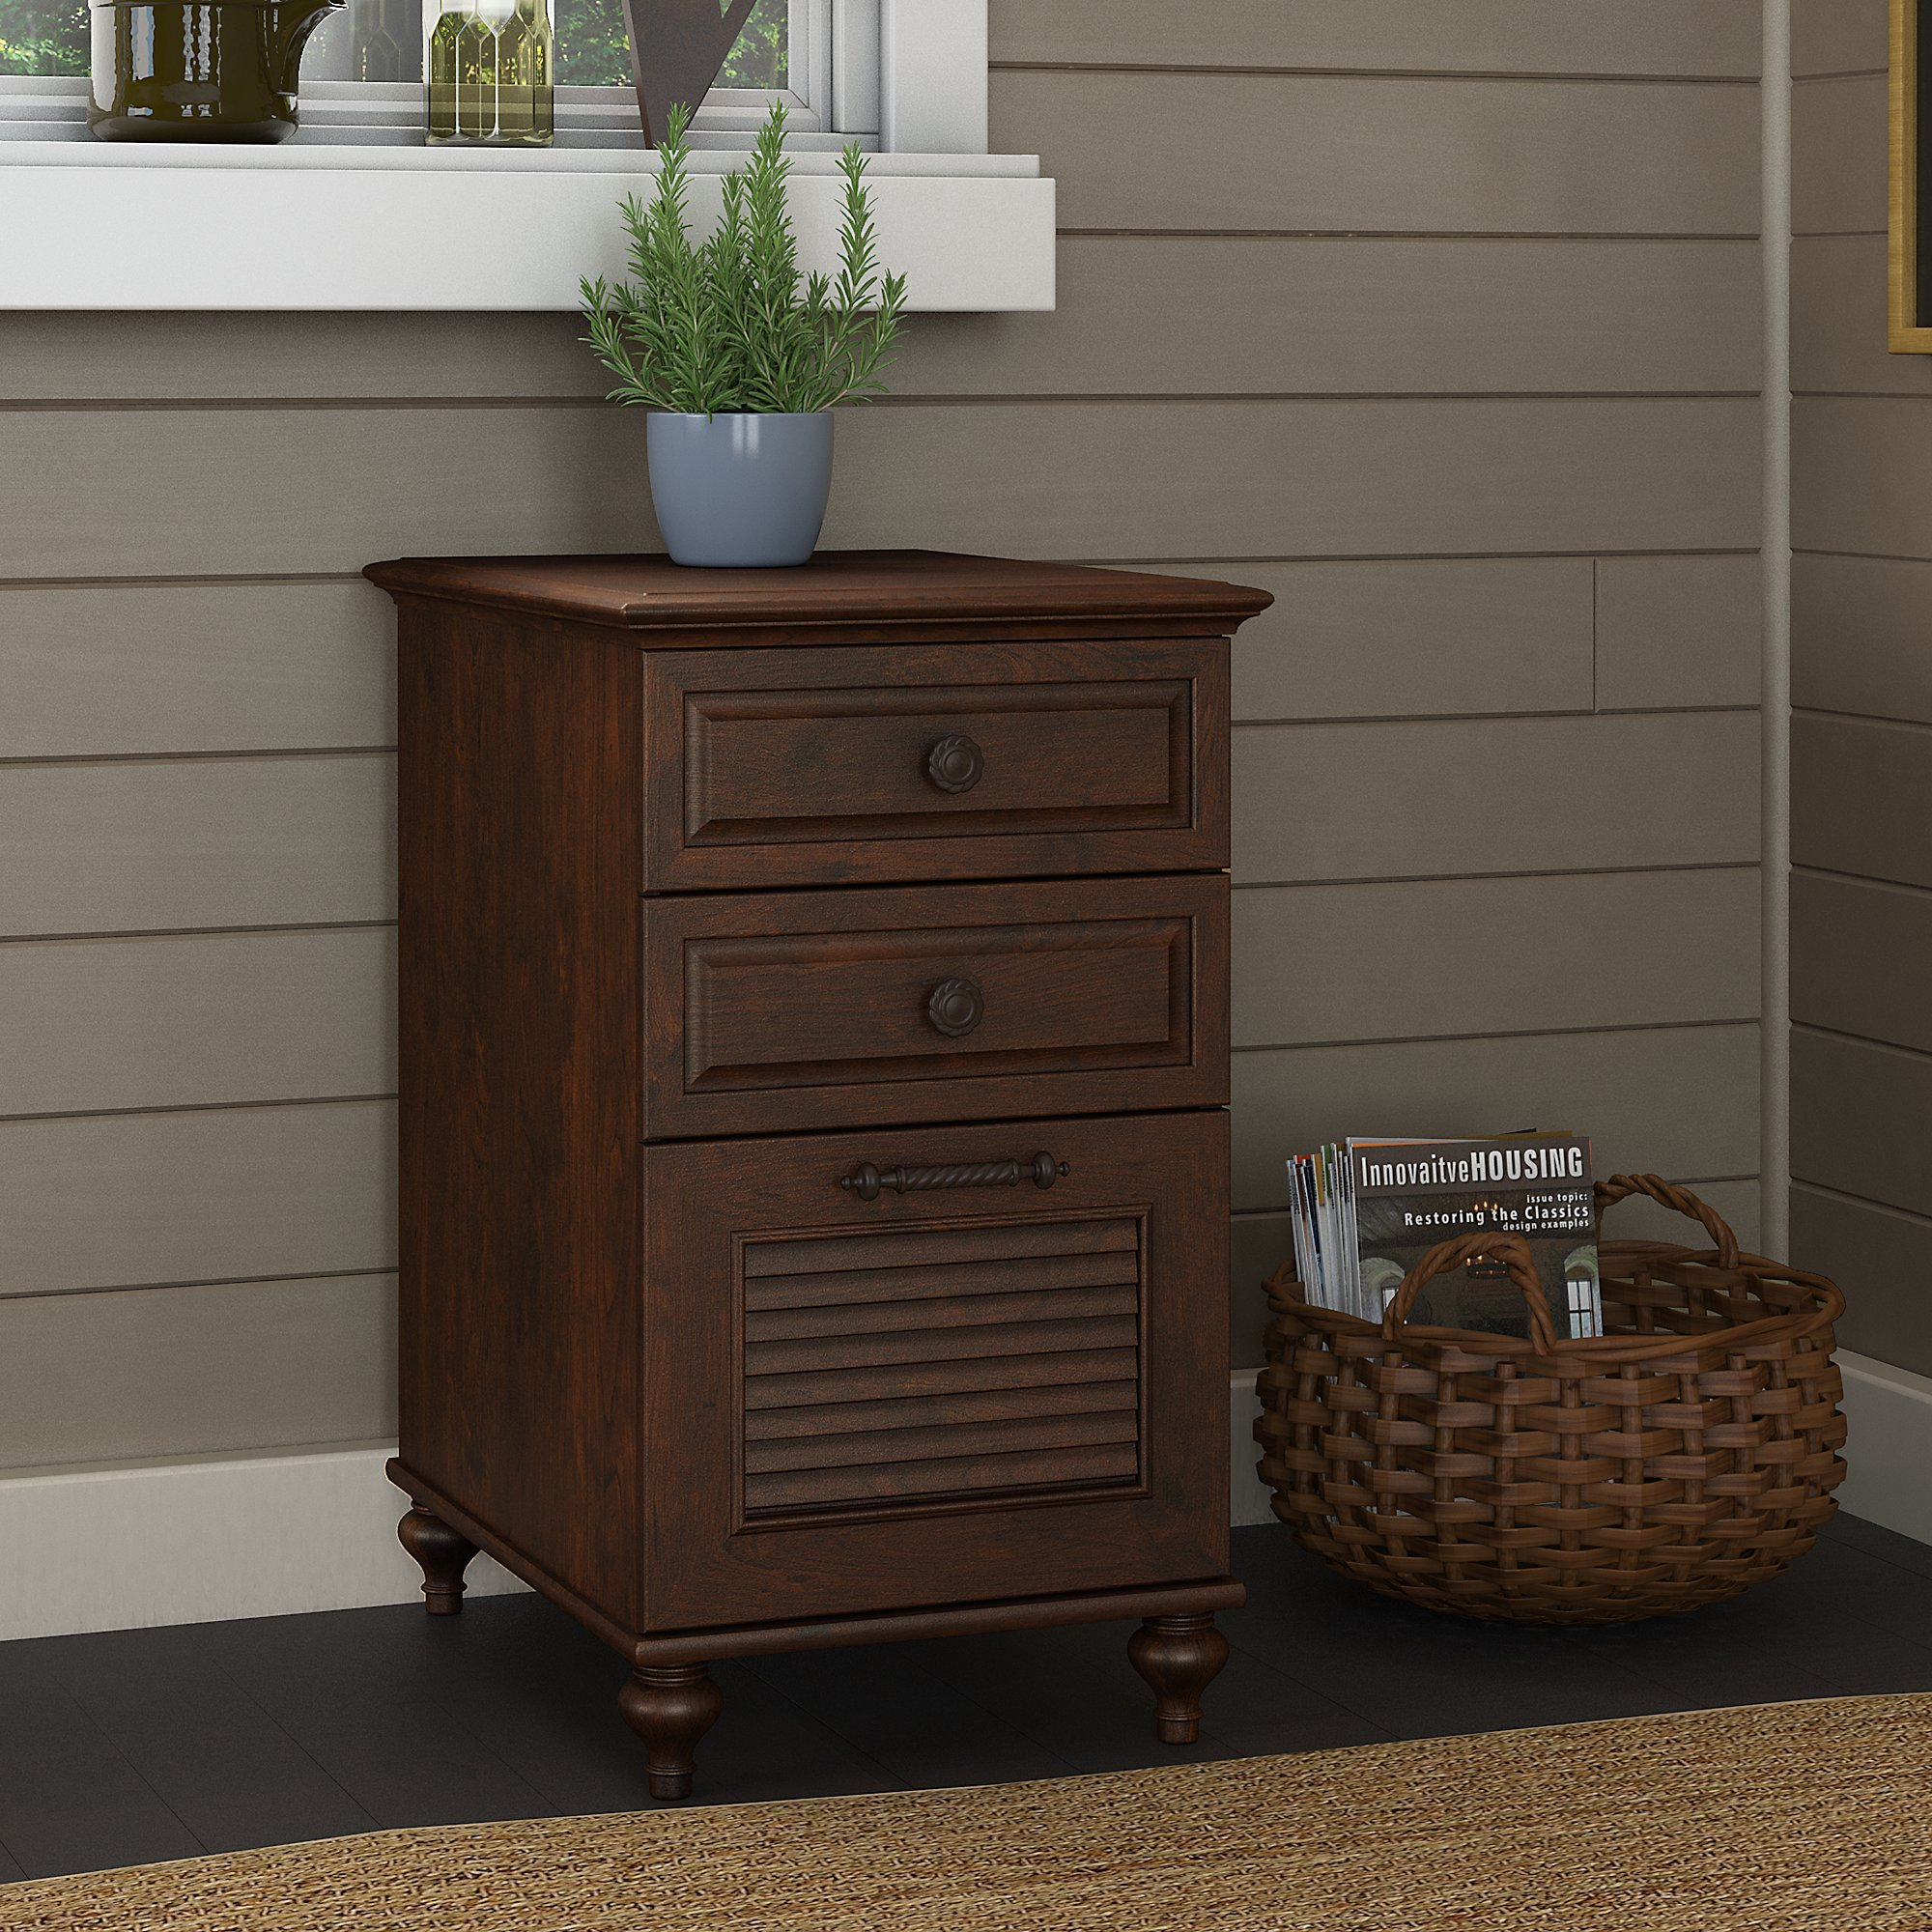 kathy ireland Home by Bush Furniture Volcano Dusk 3 Drawer File Cabinet in Coastal Cherry by kathy ireland Home by Bush Furniture